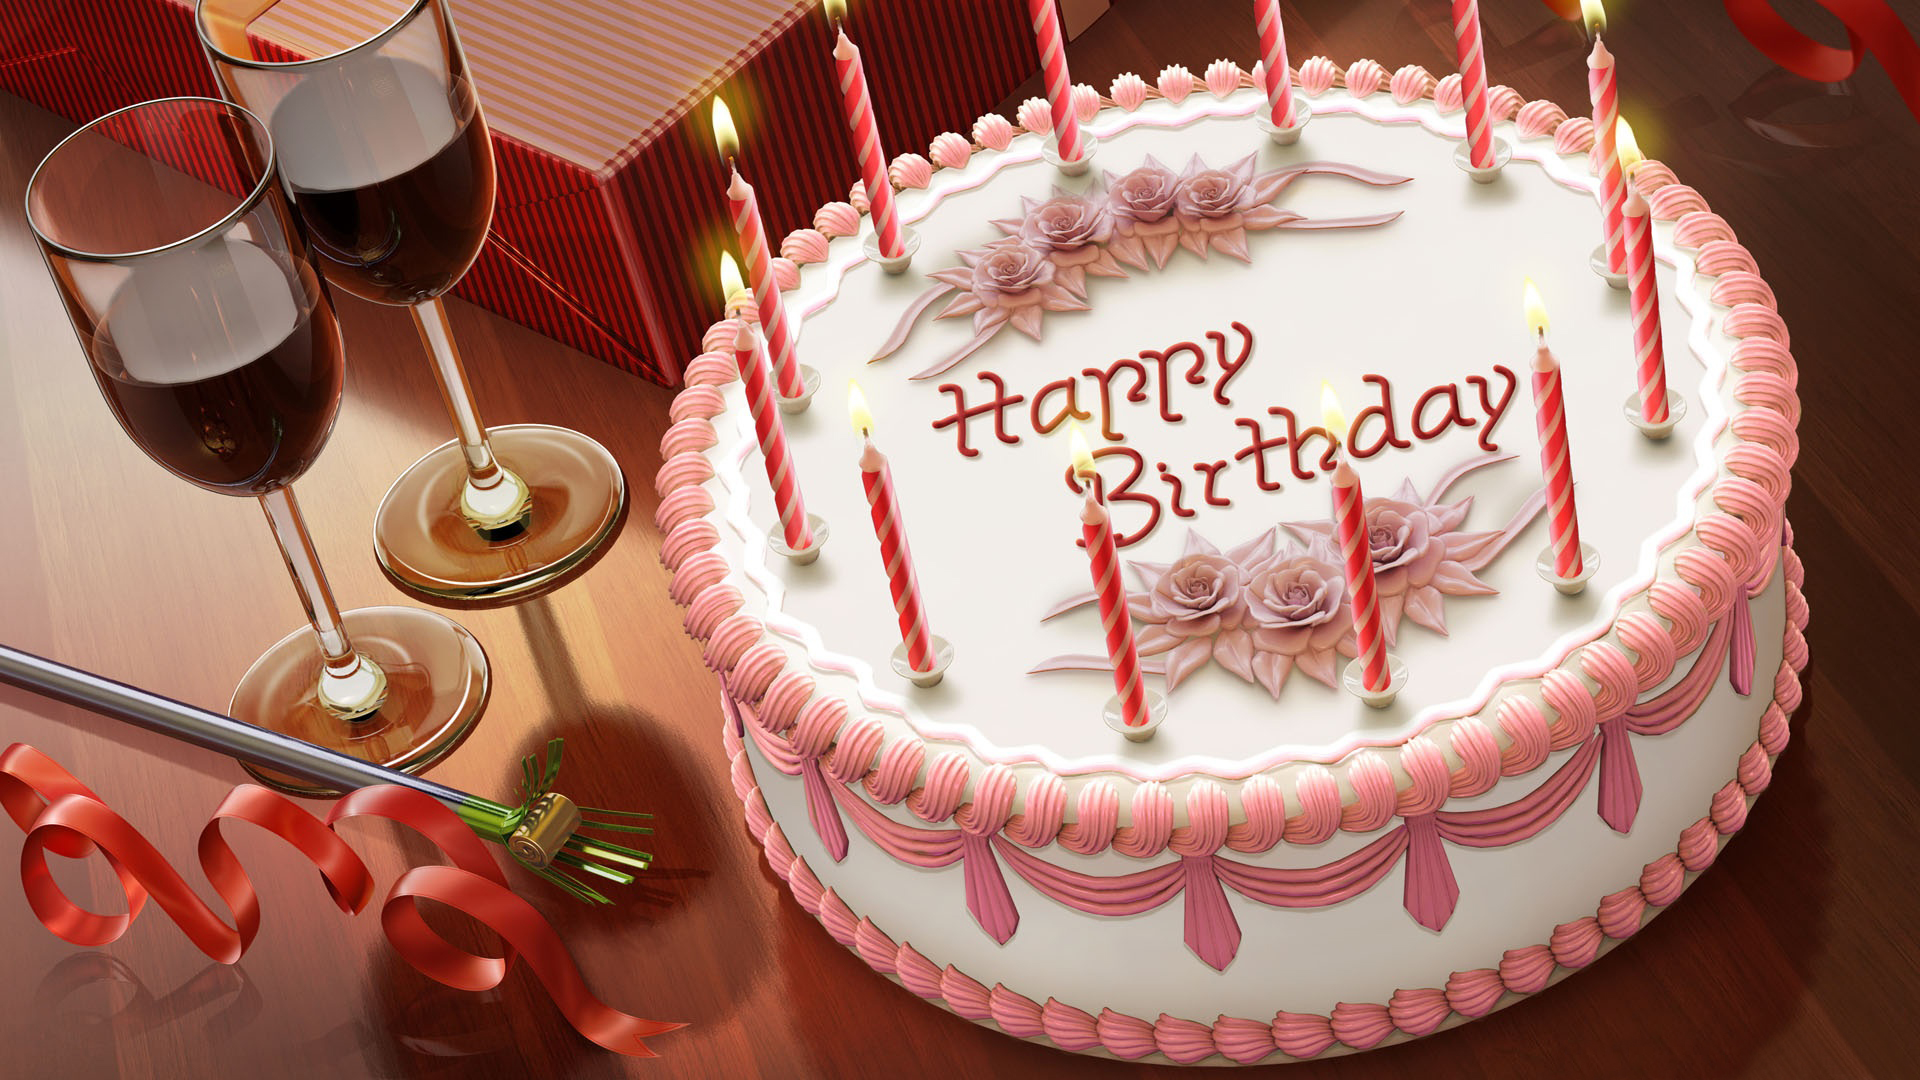 Birthday Wishes Download Wallpapers